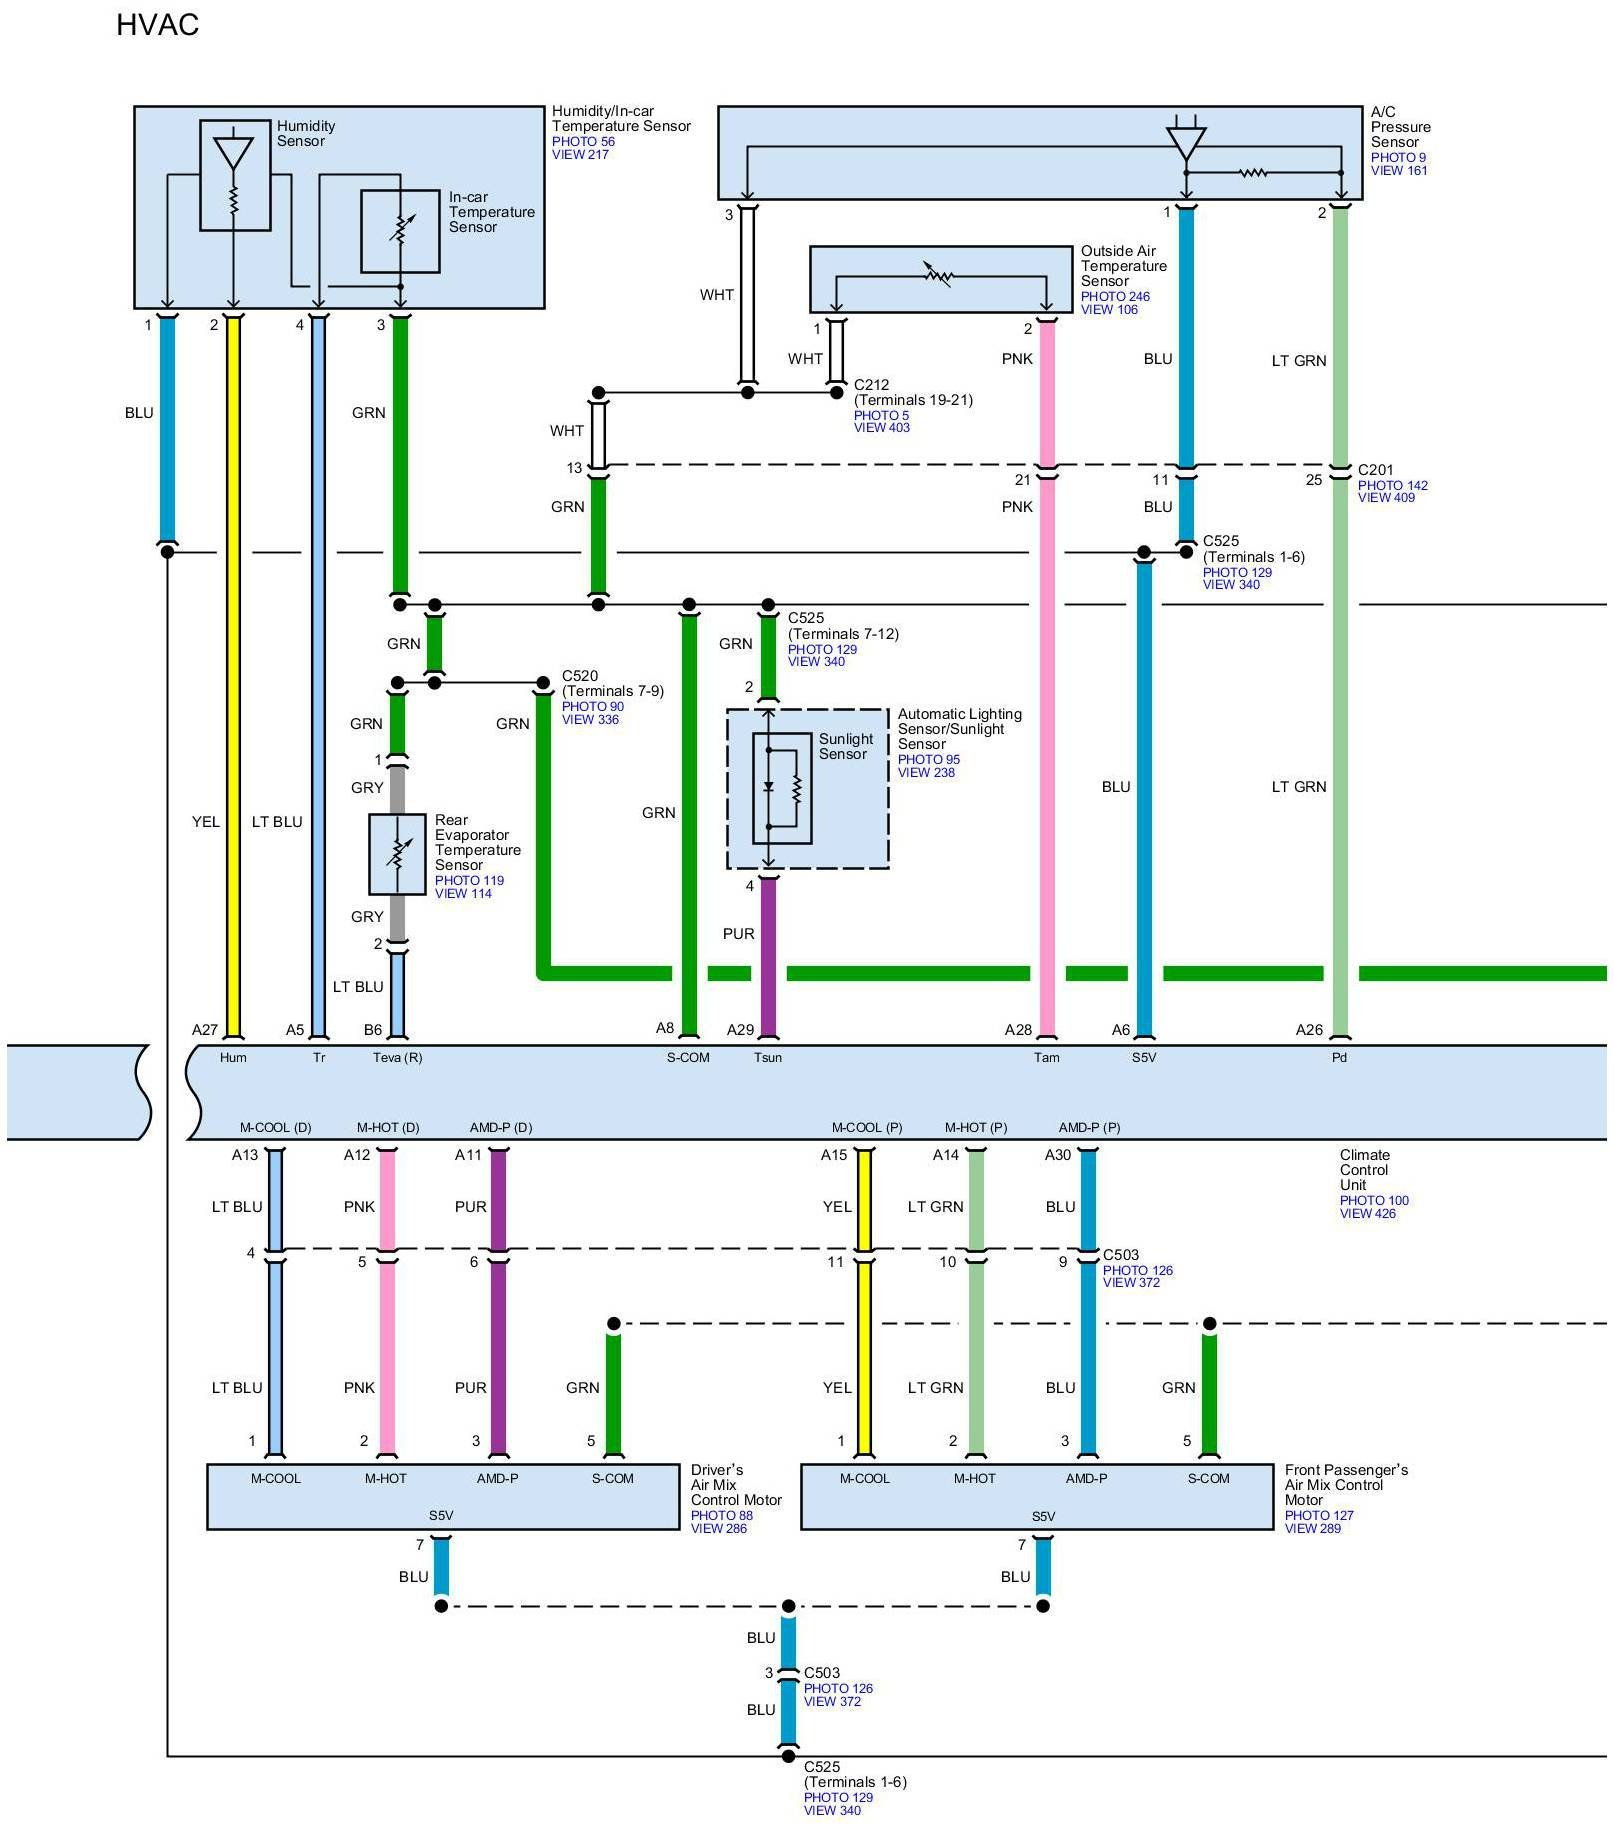 RL: Need Climate Control Wiring Diagrams For Any Model